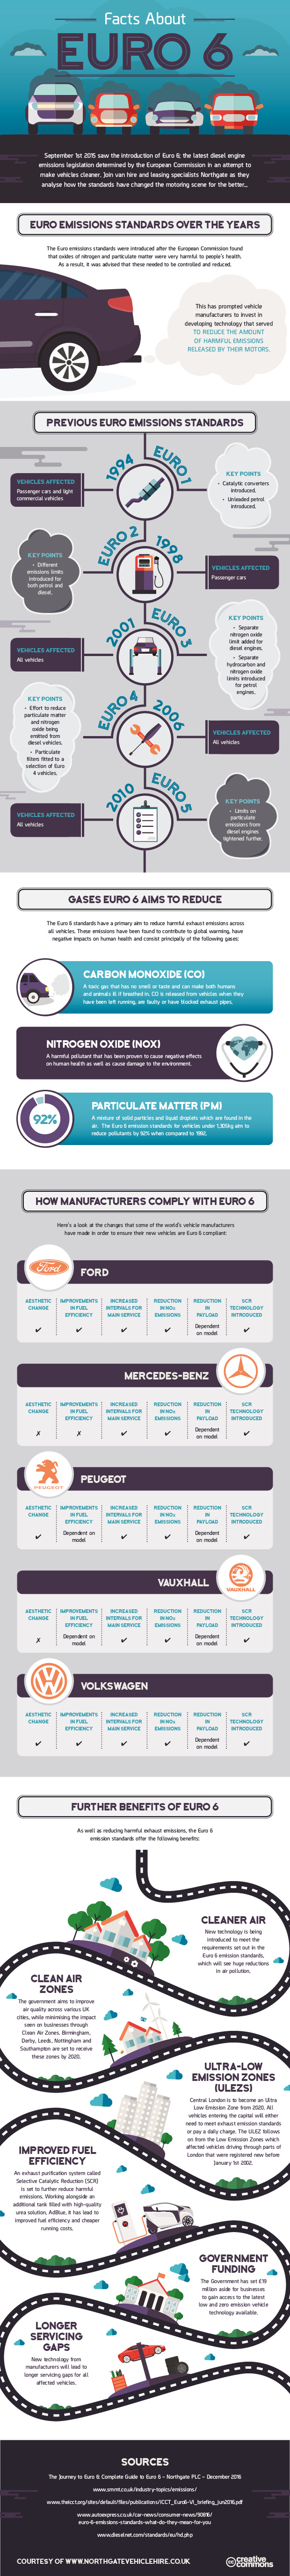 Company Car Emissions: Facts About Euro 6